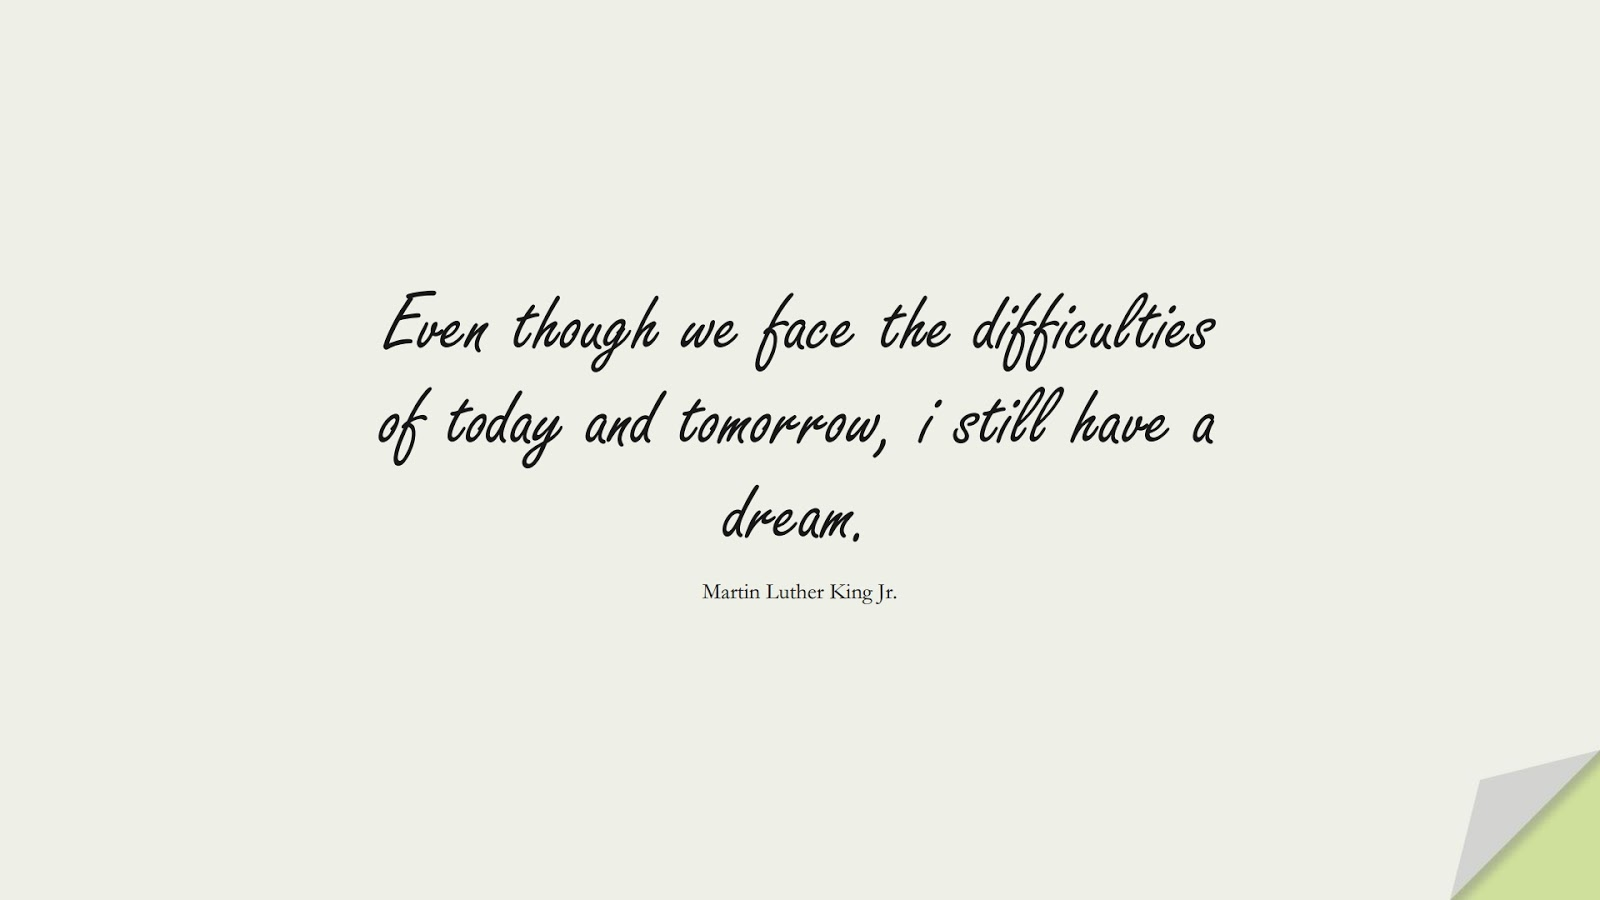 Even though we face the difficulties of today and tomorrow, i still have a dream. (Martin Luther King Jr.);  #MartinLutherKingJrQuotes